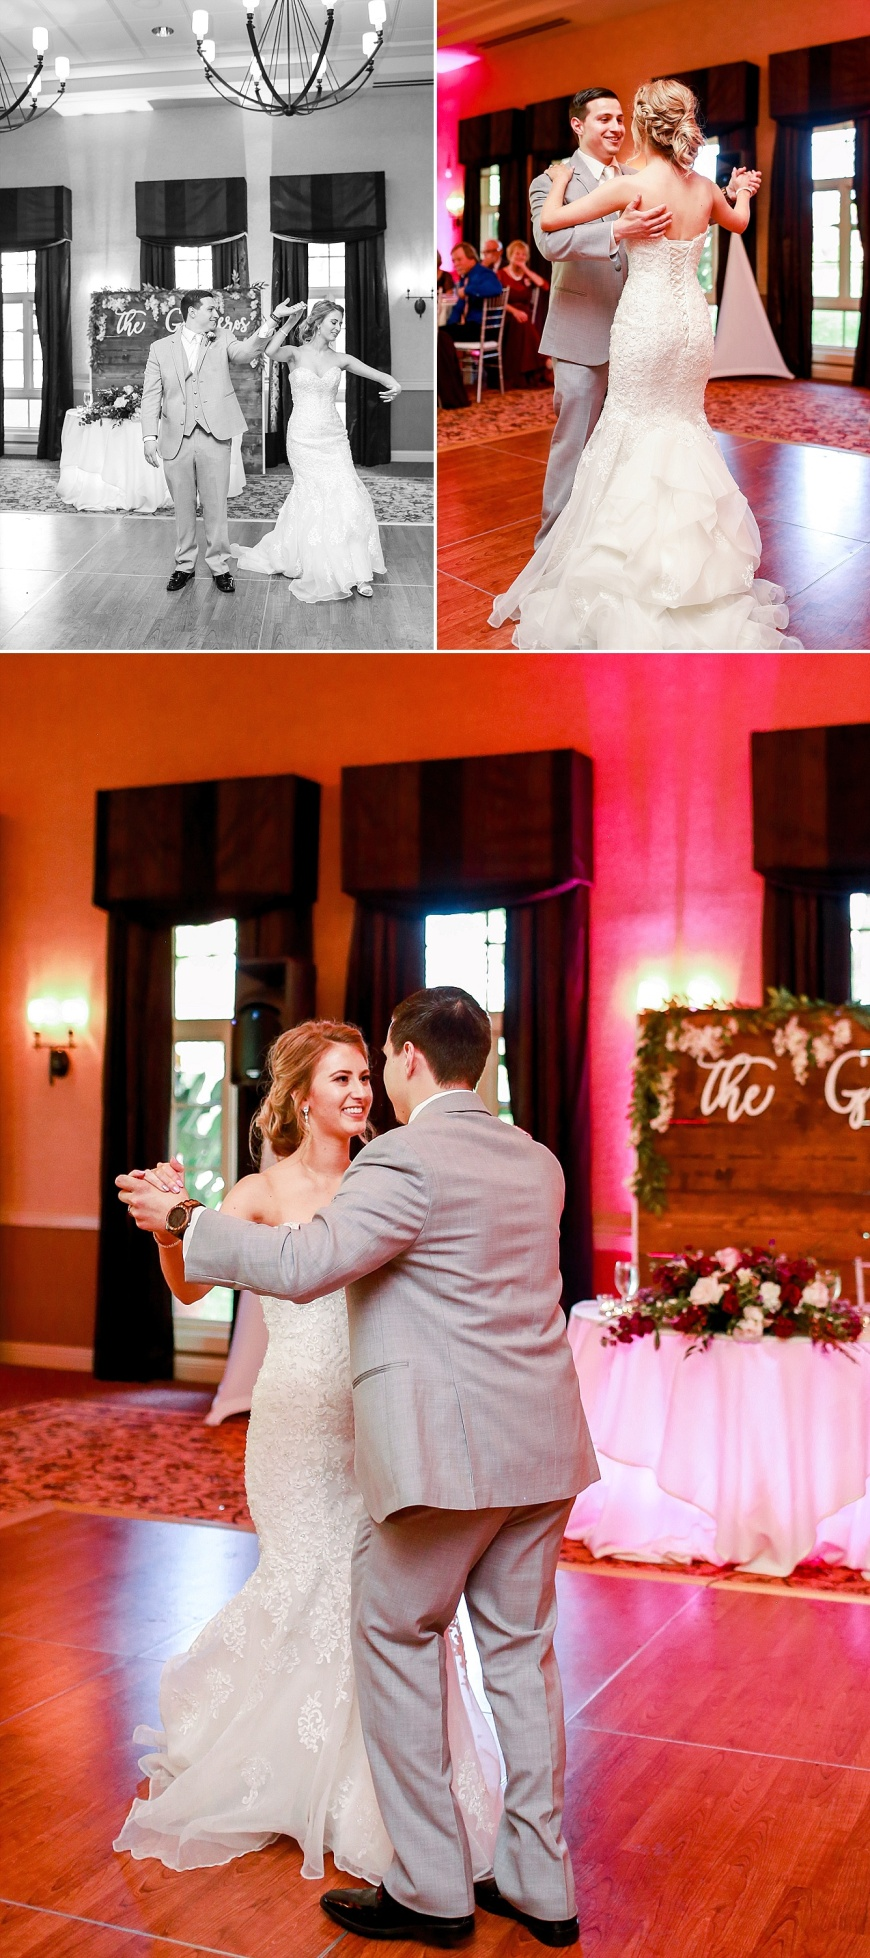 Vintner's-Inn-Wedding-Photographer_1096.jpg